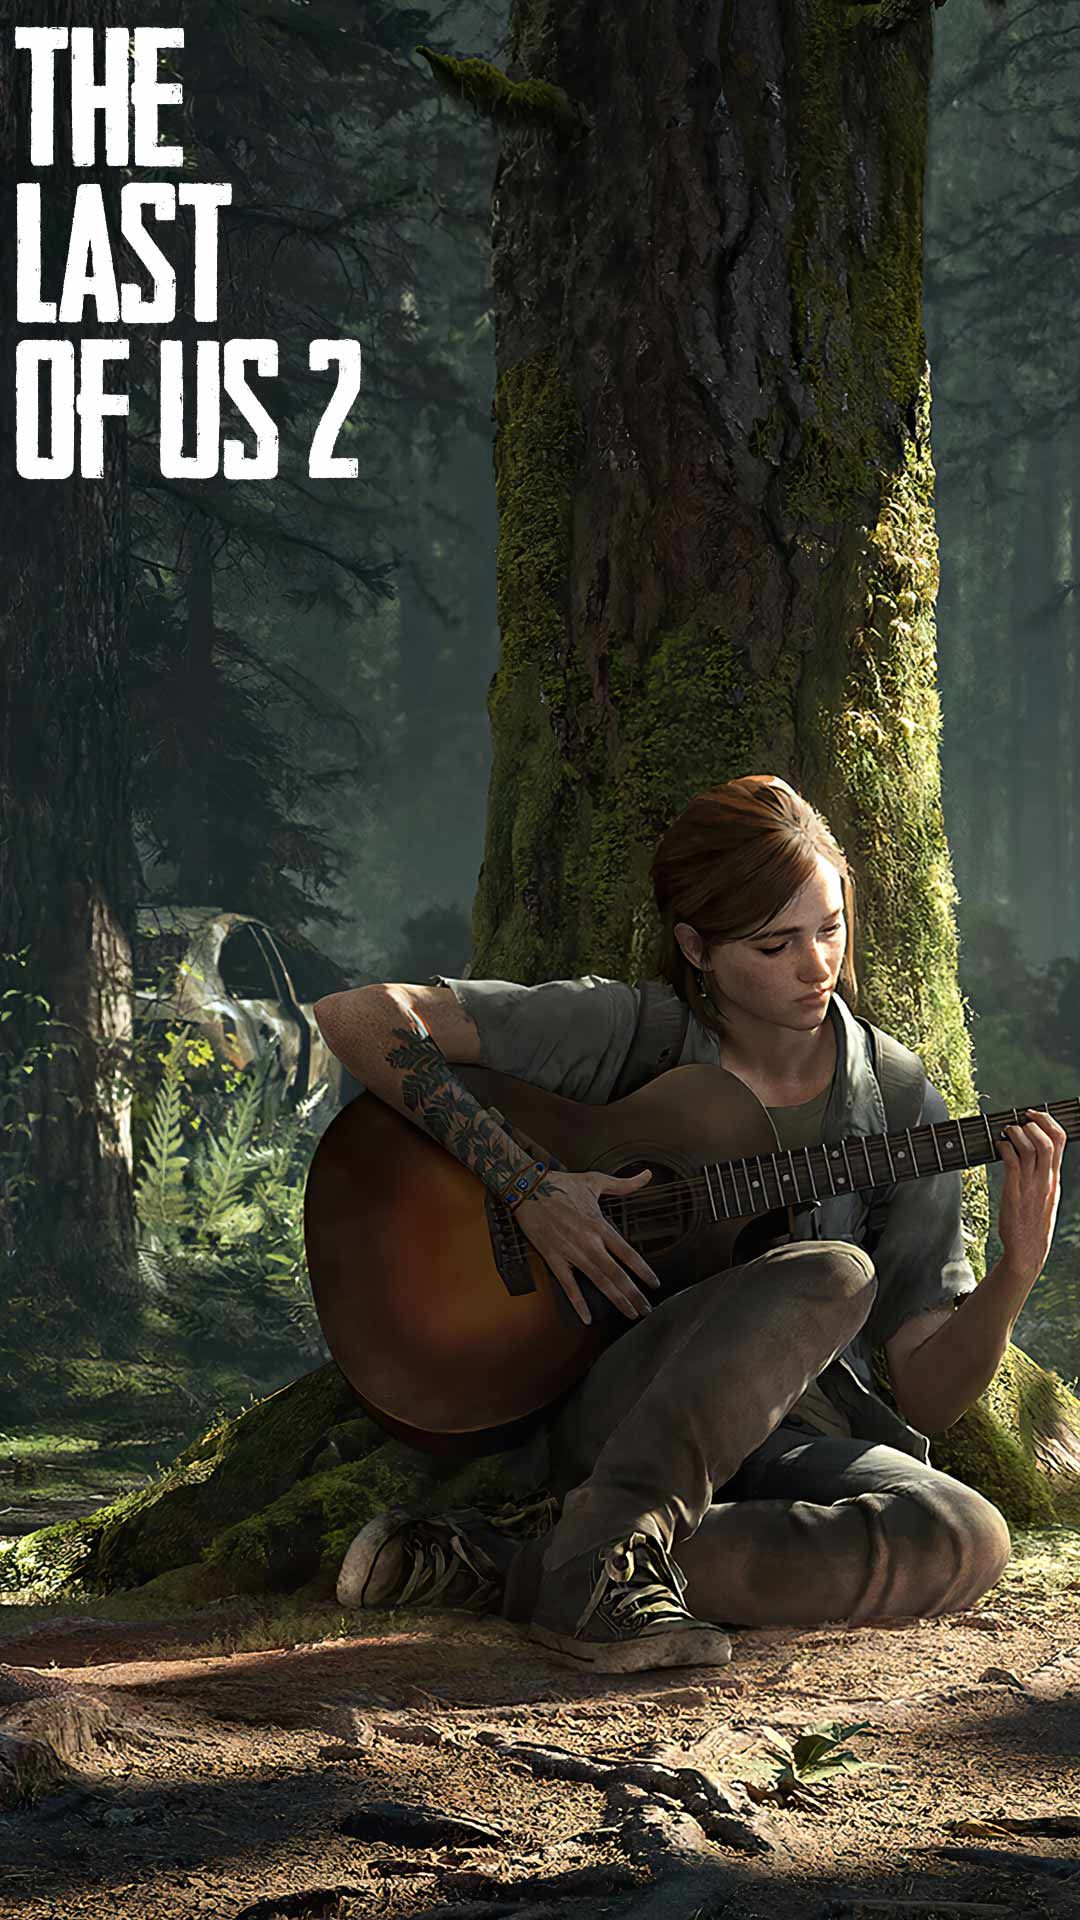 The Last Of Us Part 2 Wallpaper Hd Phone Backgrounds Ps4 Game Art Poster On Iphone Android The Last Of Us The Last Of Us 2 Wallpapers Last Of Us 2 Wallpaper